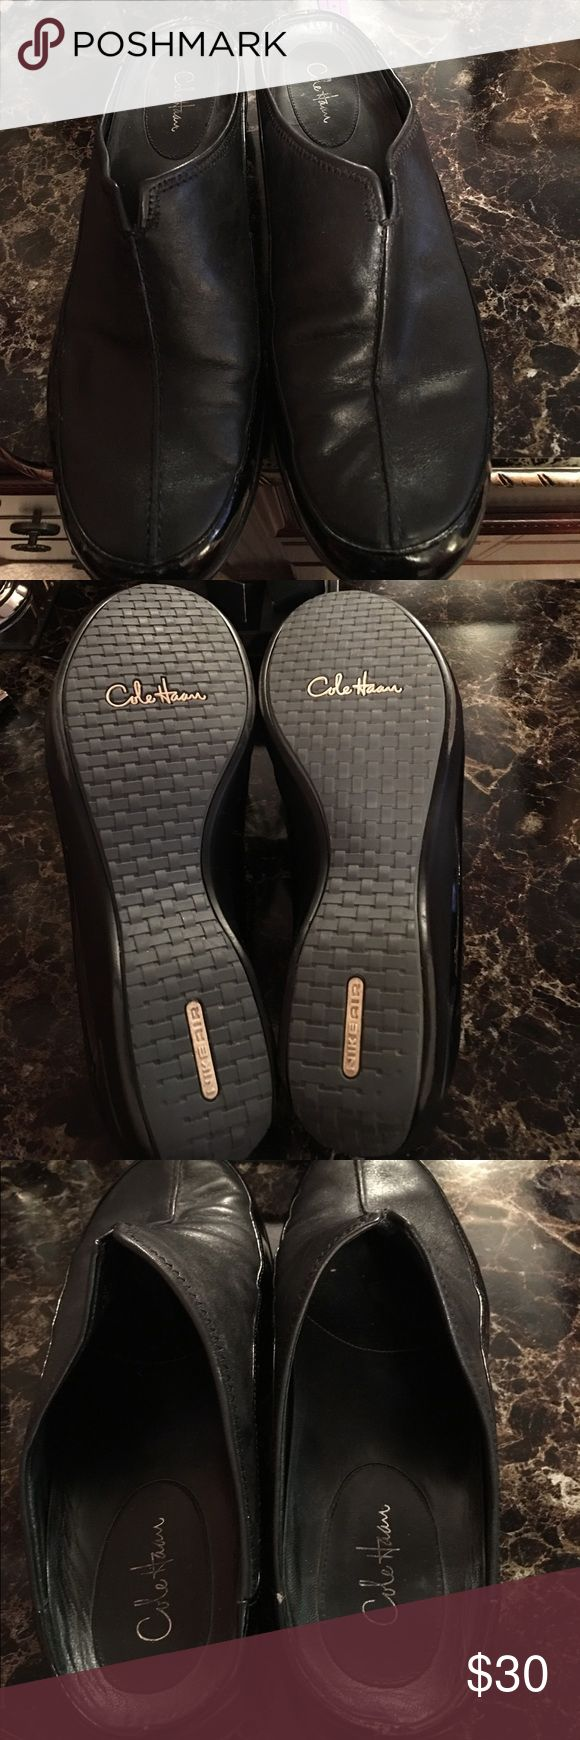 Cole Haan Nike Air Mules Comfortable Comfortable Cole Haan Mules! Only Worn Twice! Only one small flaw, there is a small nick on back of one of the shoes as shown on the picture! There are a must have to your closet! Cole Haan Shoes Mules & Clogs